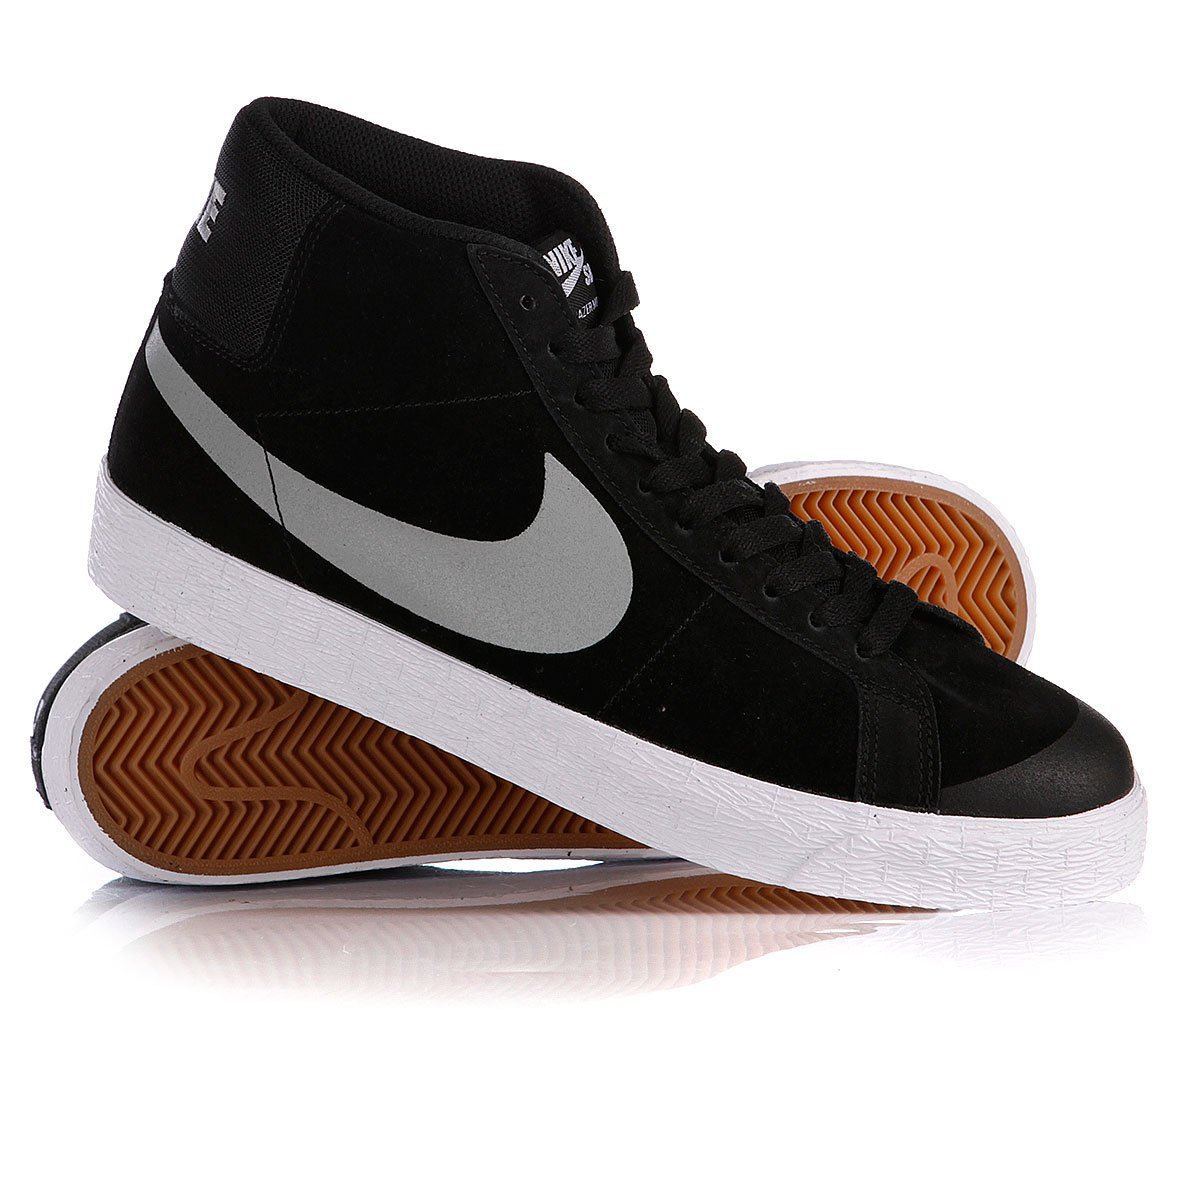 2552052d Купить кеды высокие Nike Blazer Sb Premium Se Black/Base Grey ...